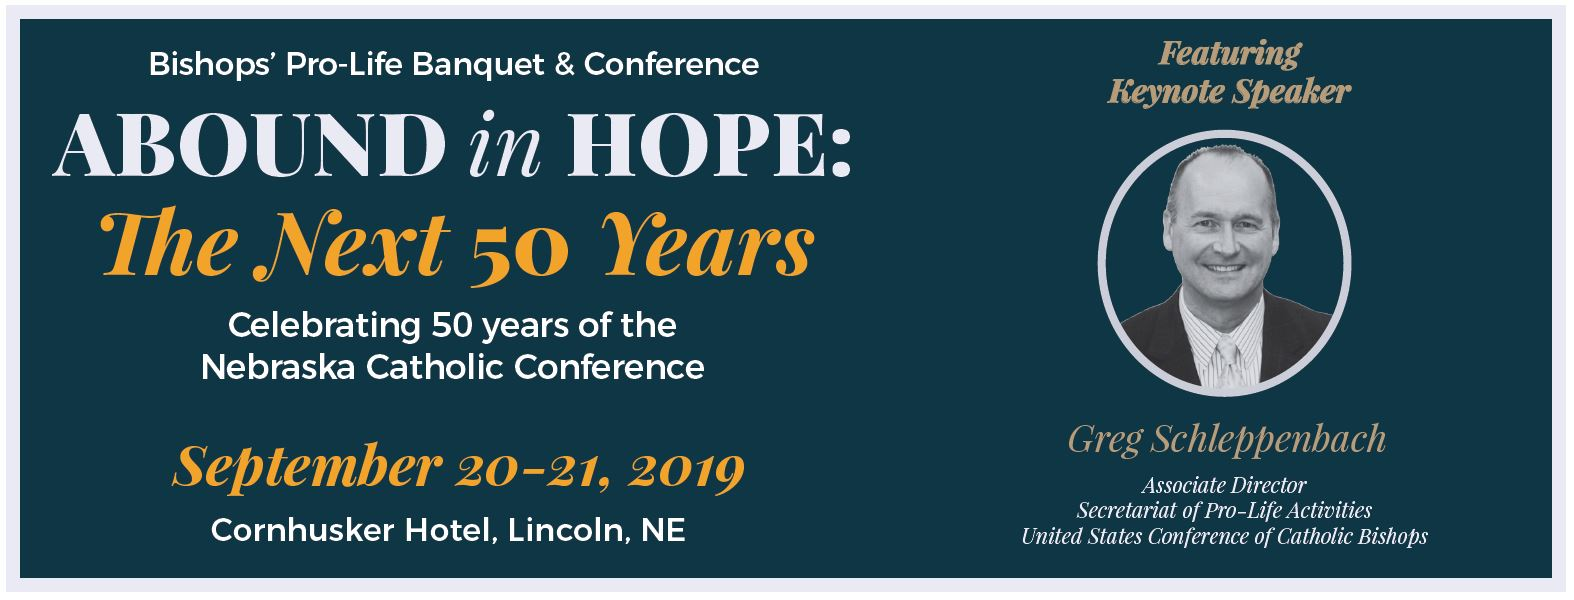 Bishops' Pro-Life Banquet and Conference